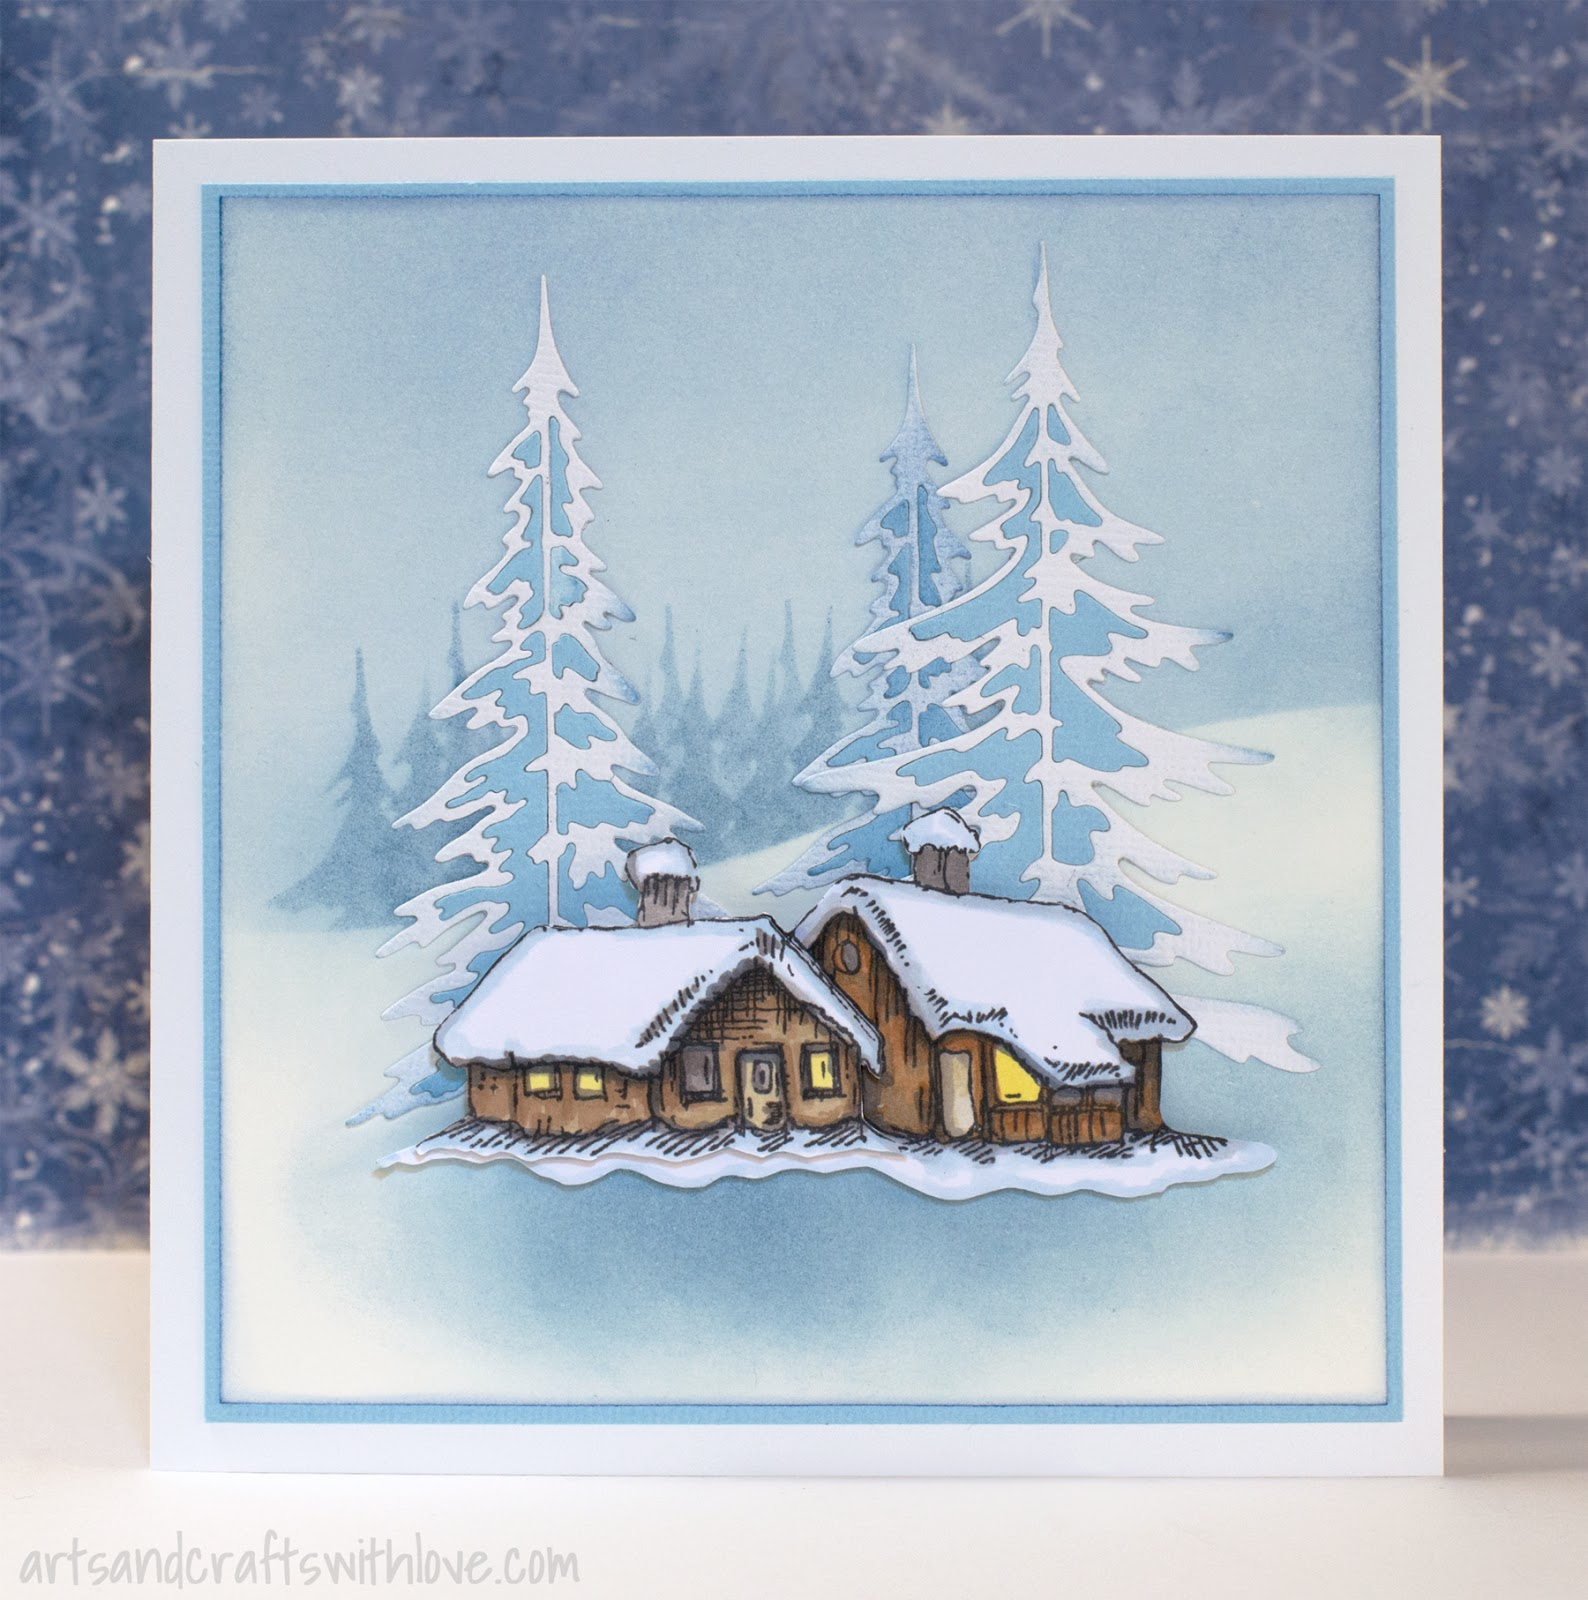 Elina\'s Arts And Crafts: Snow and ice on a Christmas card